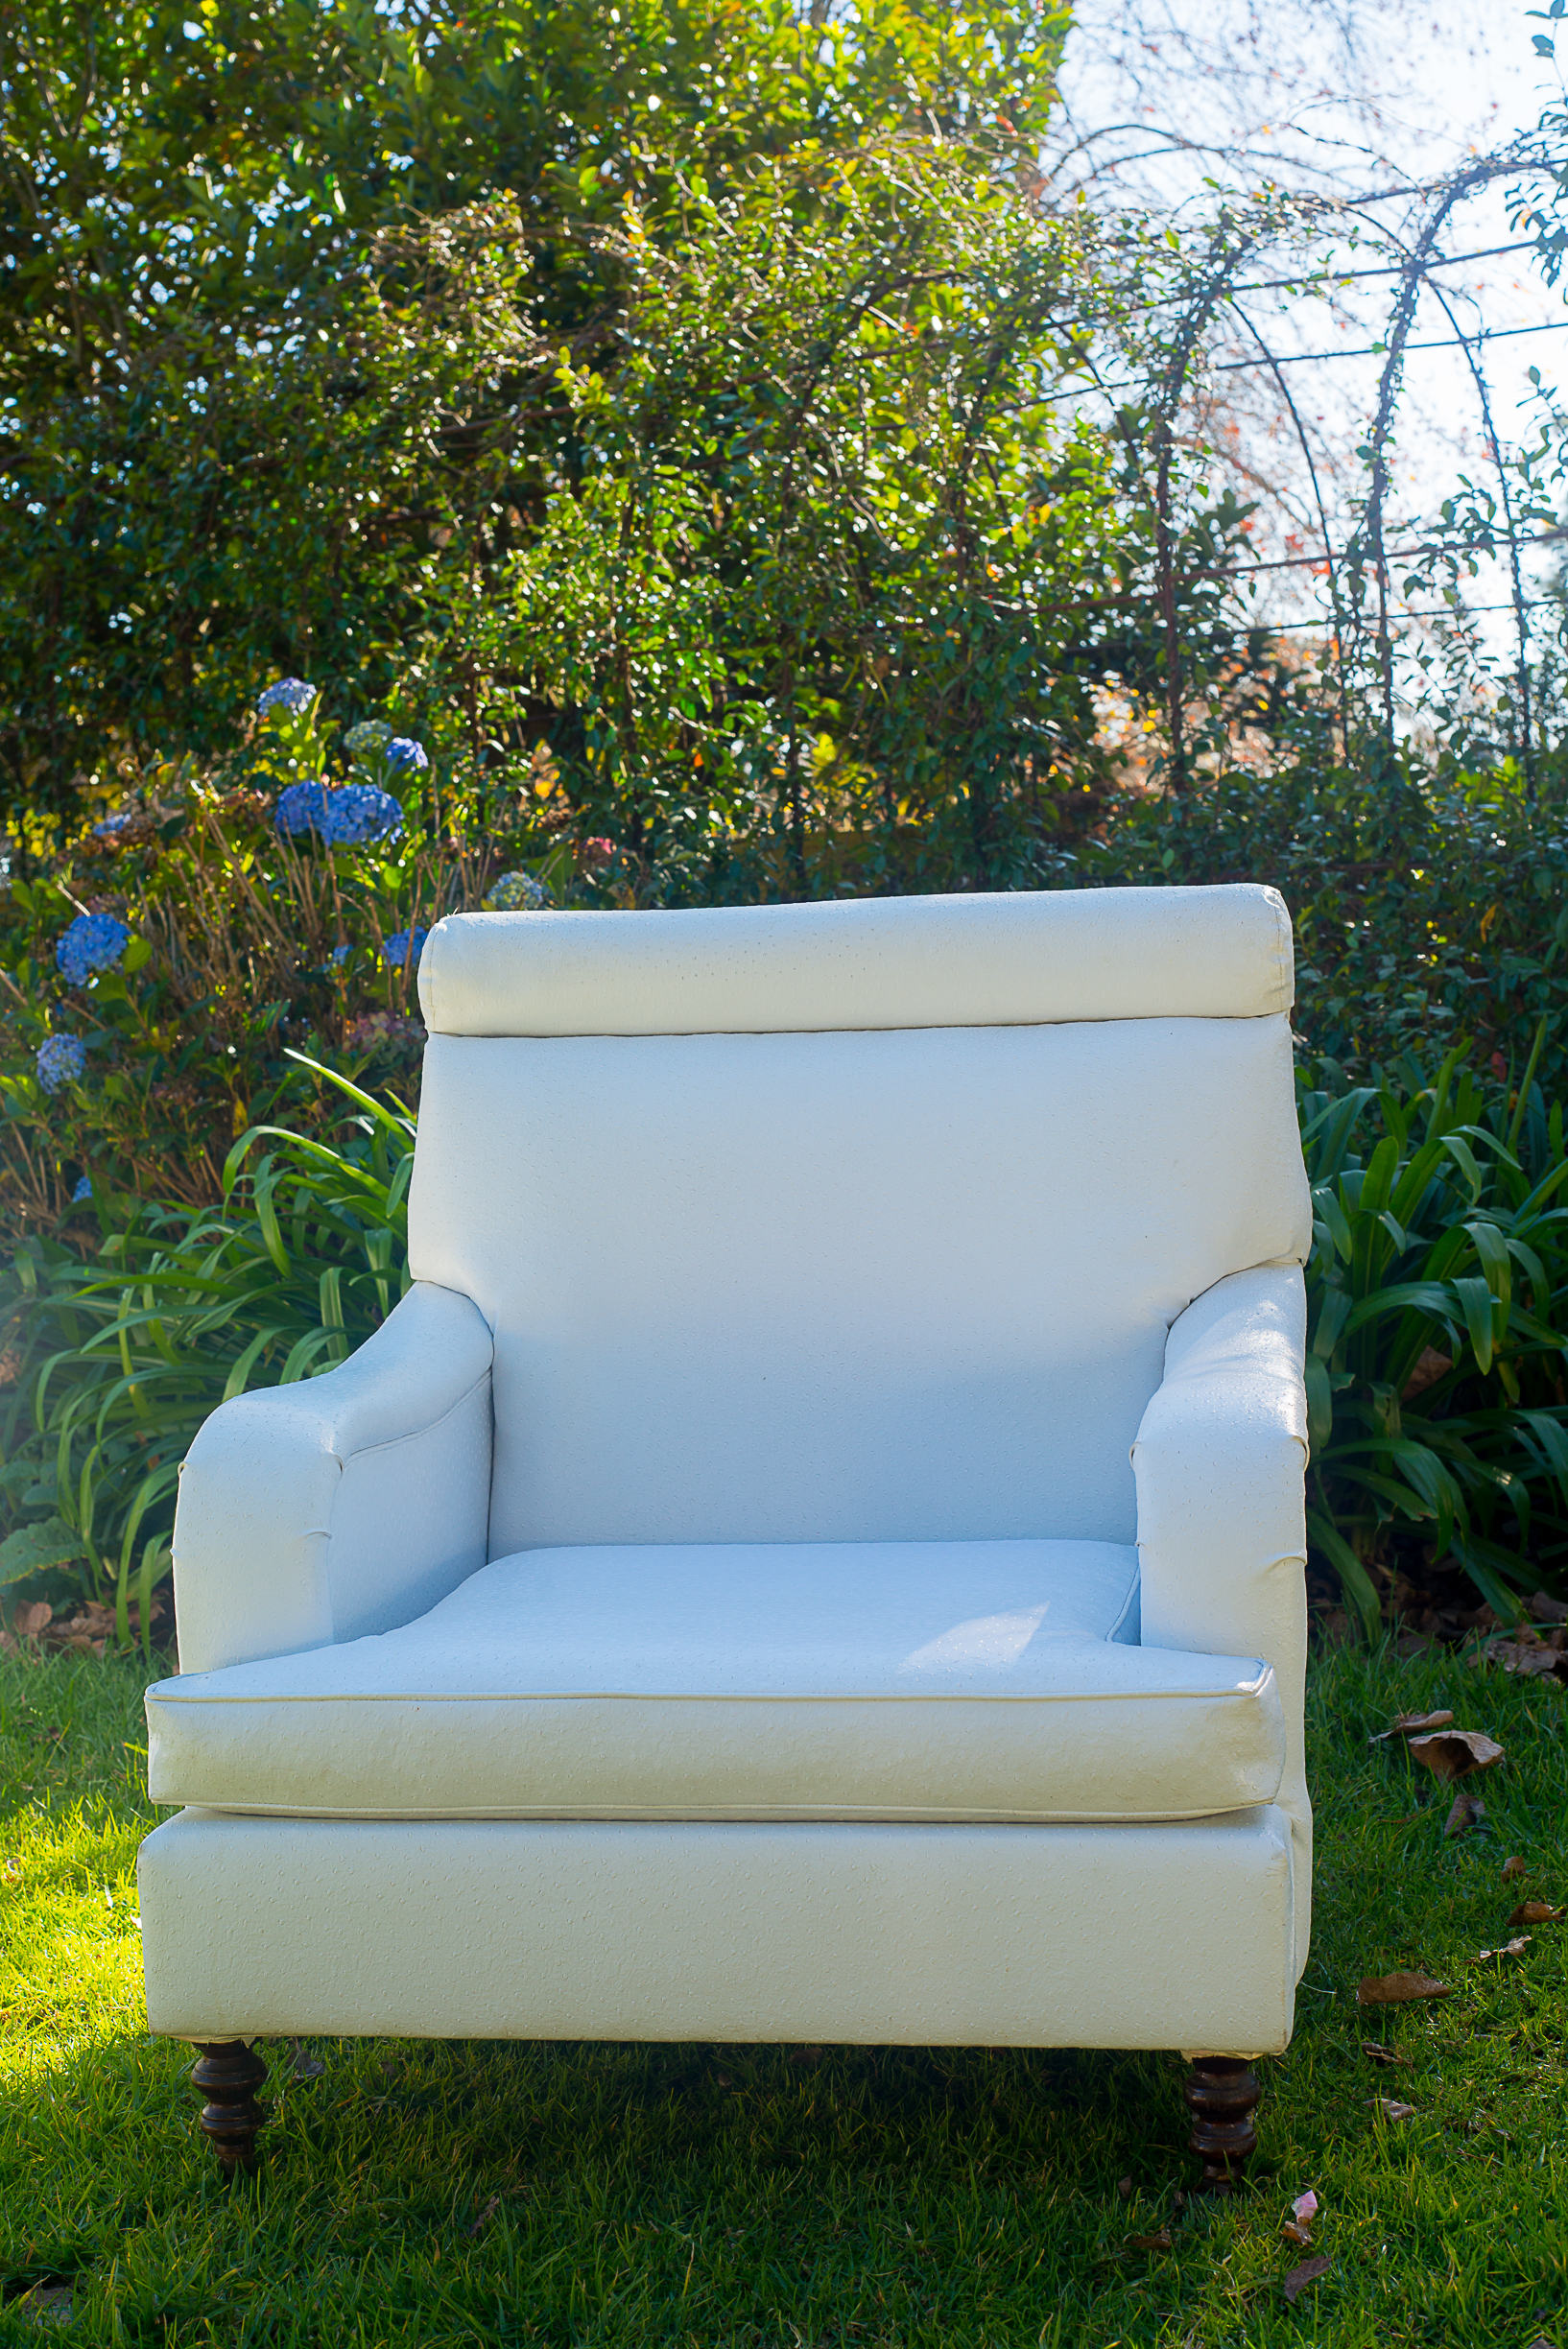 Laurie Kohrs High Backed Wing Chairs Ostrich Skin Furniture Hire Weddings KZN Midlands